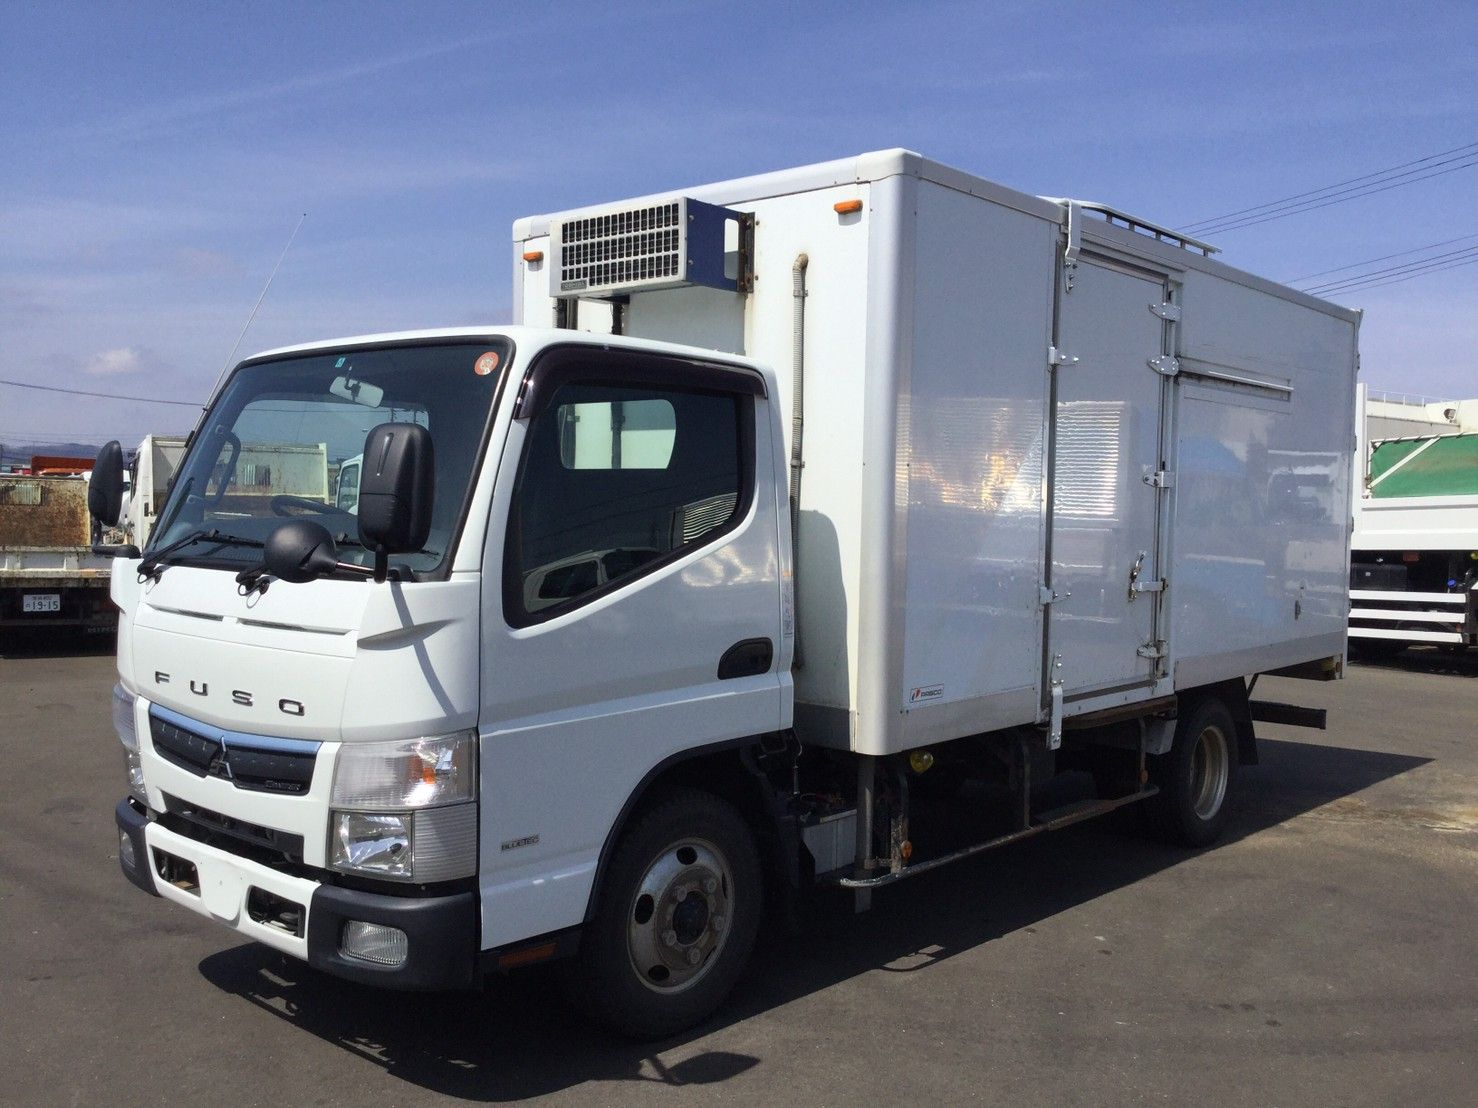 2016 Mitsubishi Canter Freezer Truck 2 Ton Tpg Fea50 In 2020 Mitsubishi Canter Trucks Used Trucks For Sale